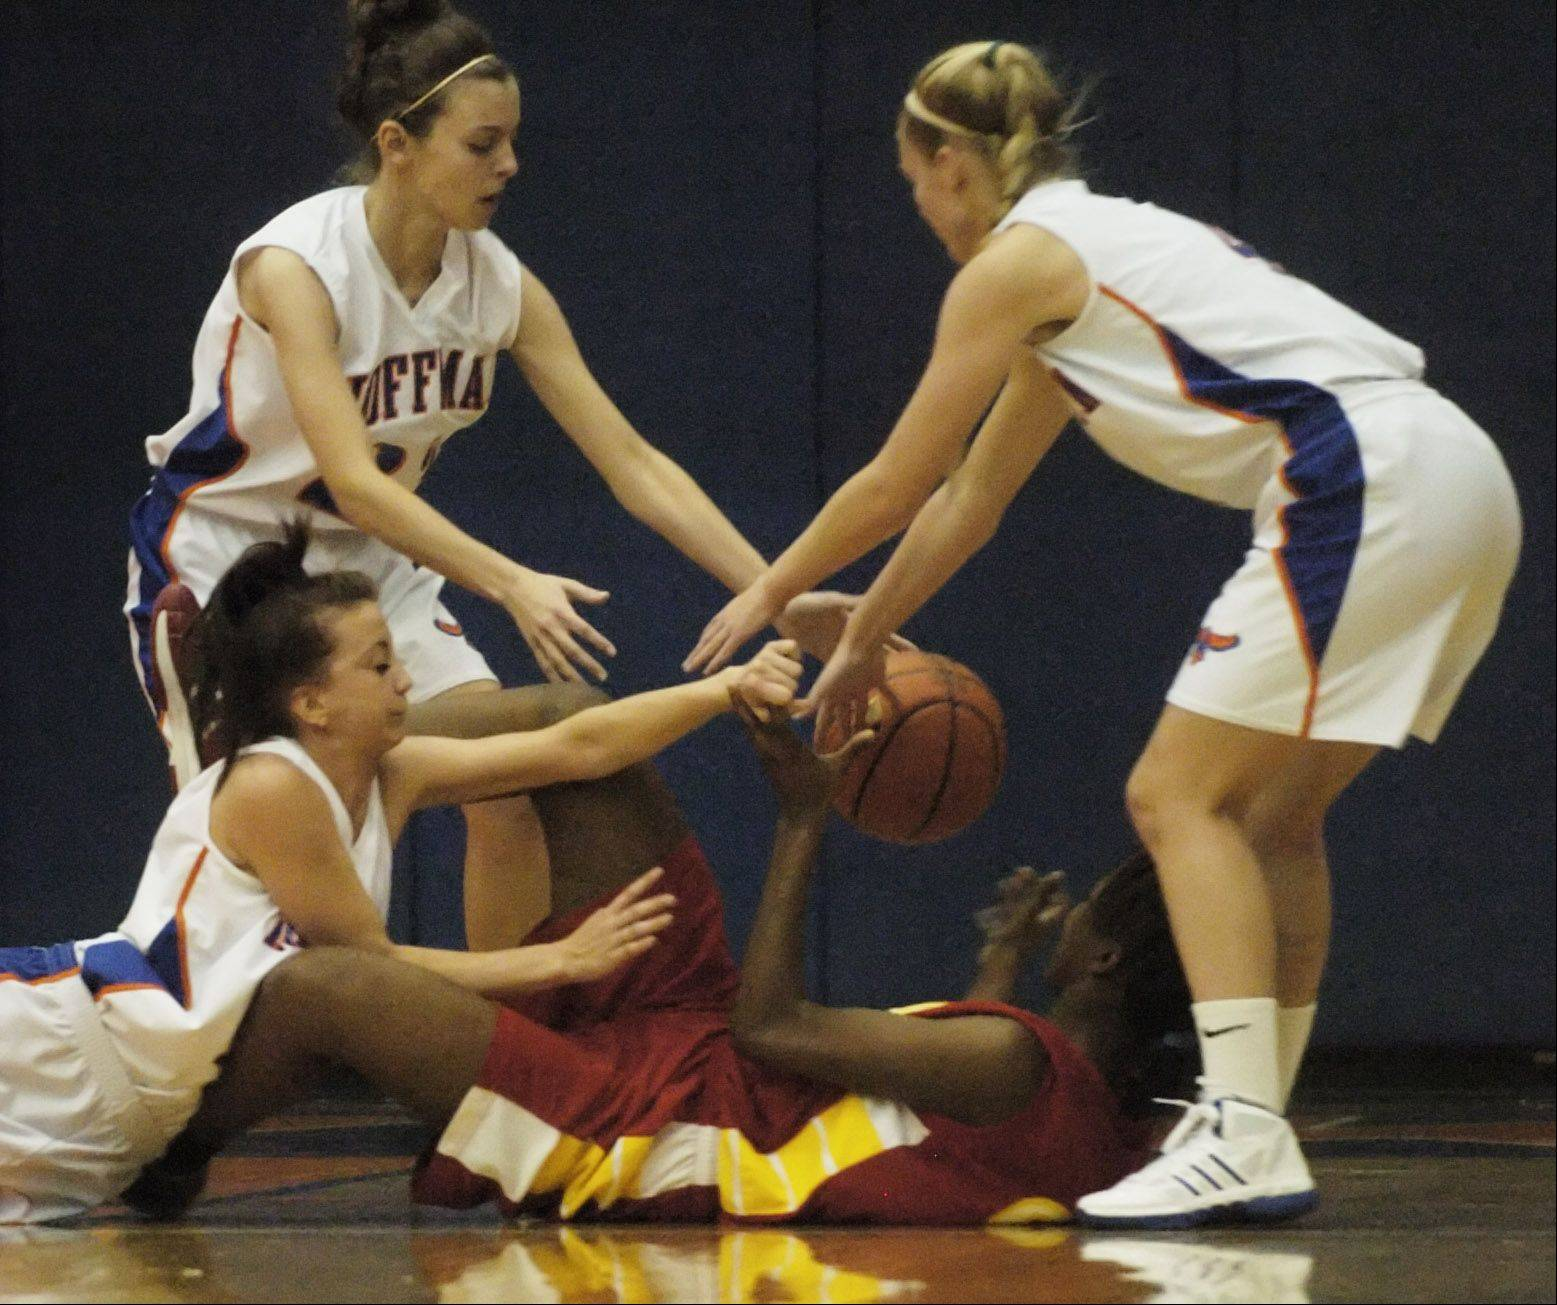 Hoffman Estates players from left Sara Burns, Rachel Mirabile and Mary Pettit strip the ball from North Lawndale's Caprisha Treaduell during Tuesday's game in Hoffman Estates.